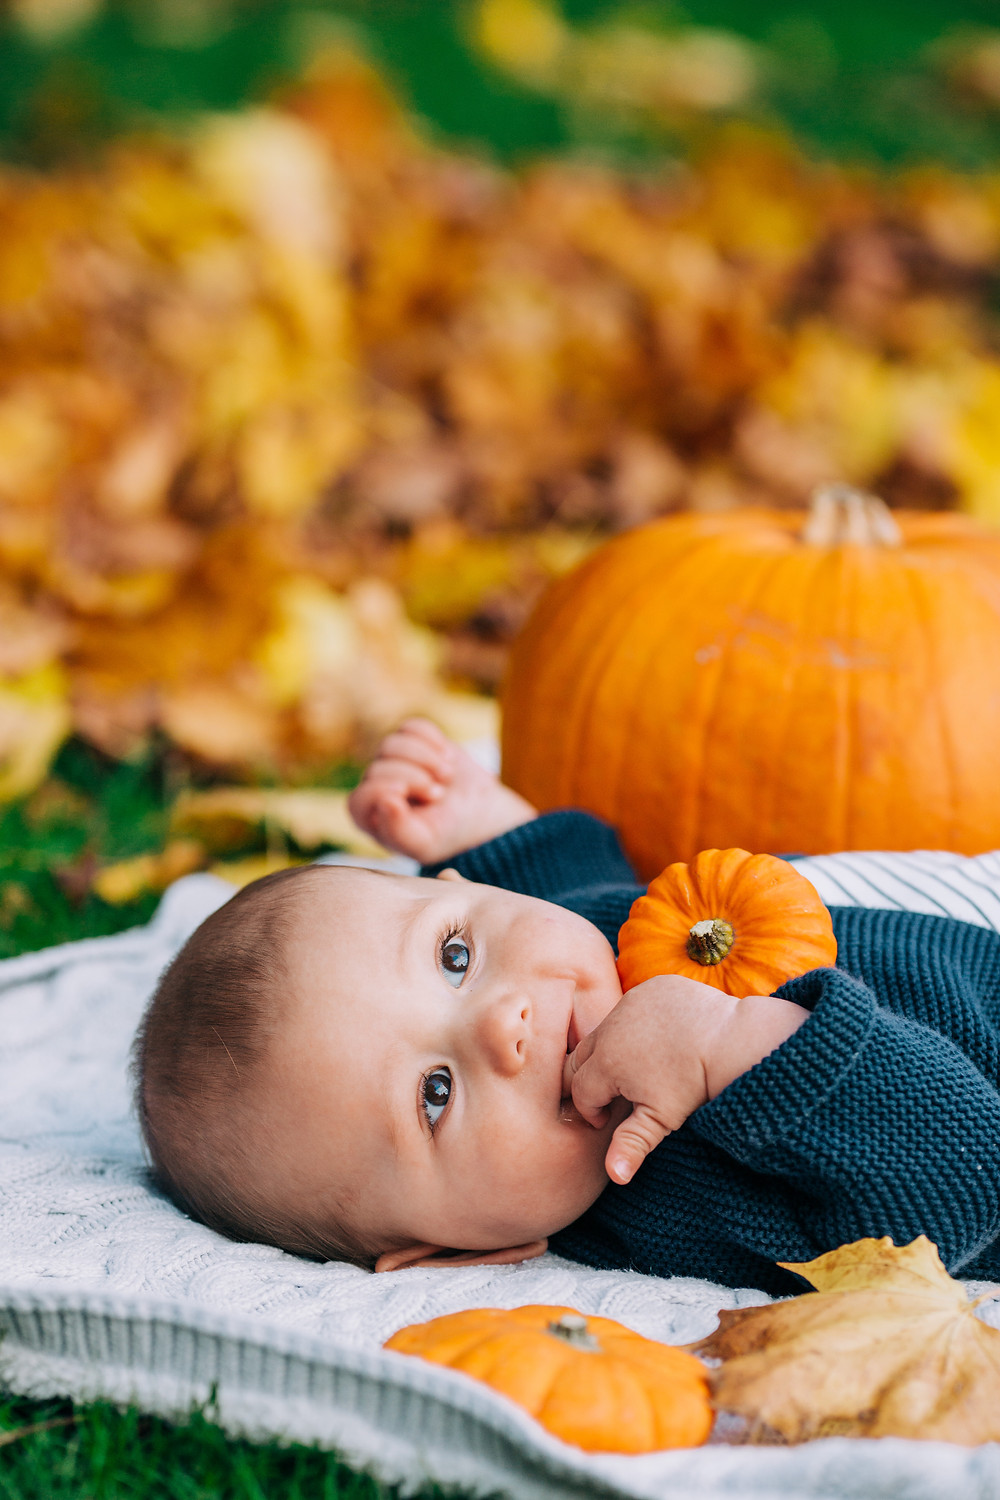 Sweet smiling baby lying on blanket, surrounded by pumpkins and autumn leaves in Heaton Park, Newcastle